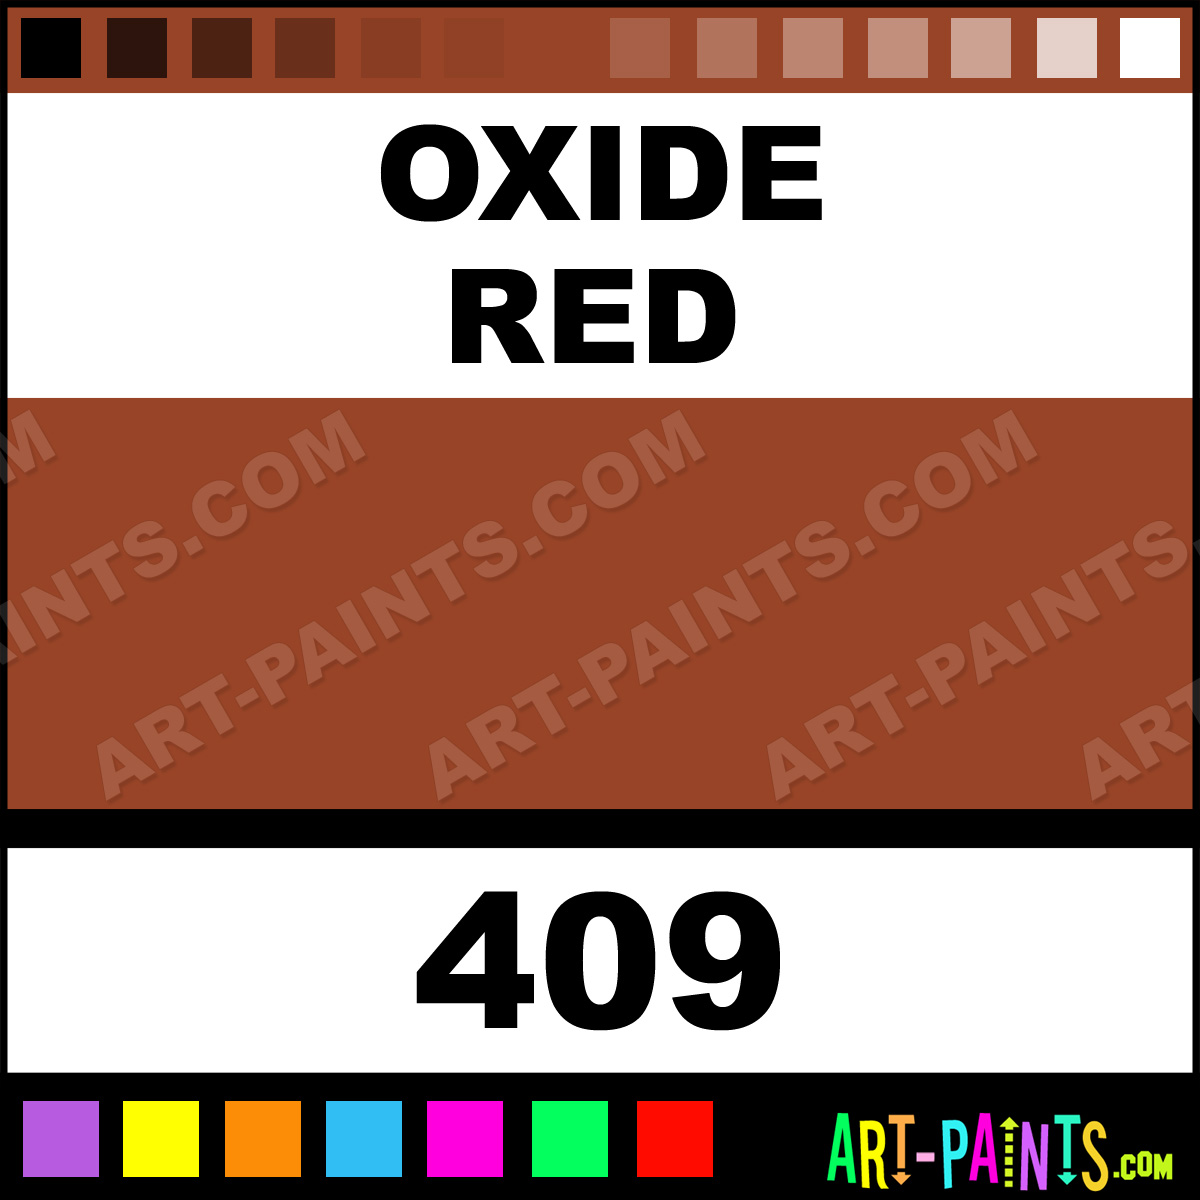 Oxide red classic gouache paints 409 oxide red paint Classic red paint color